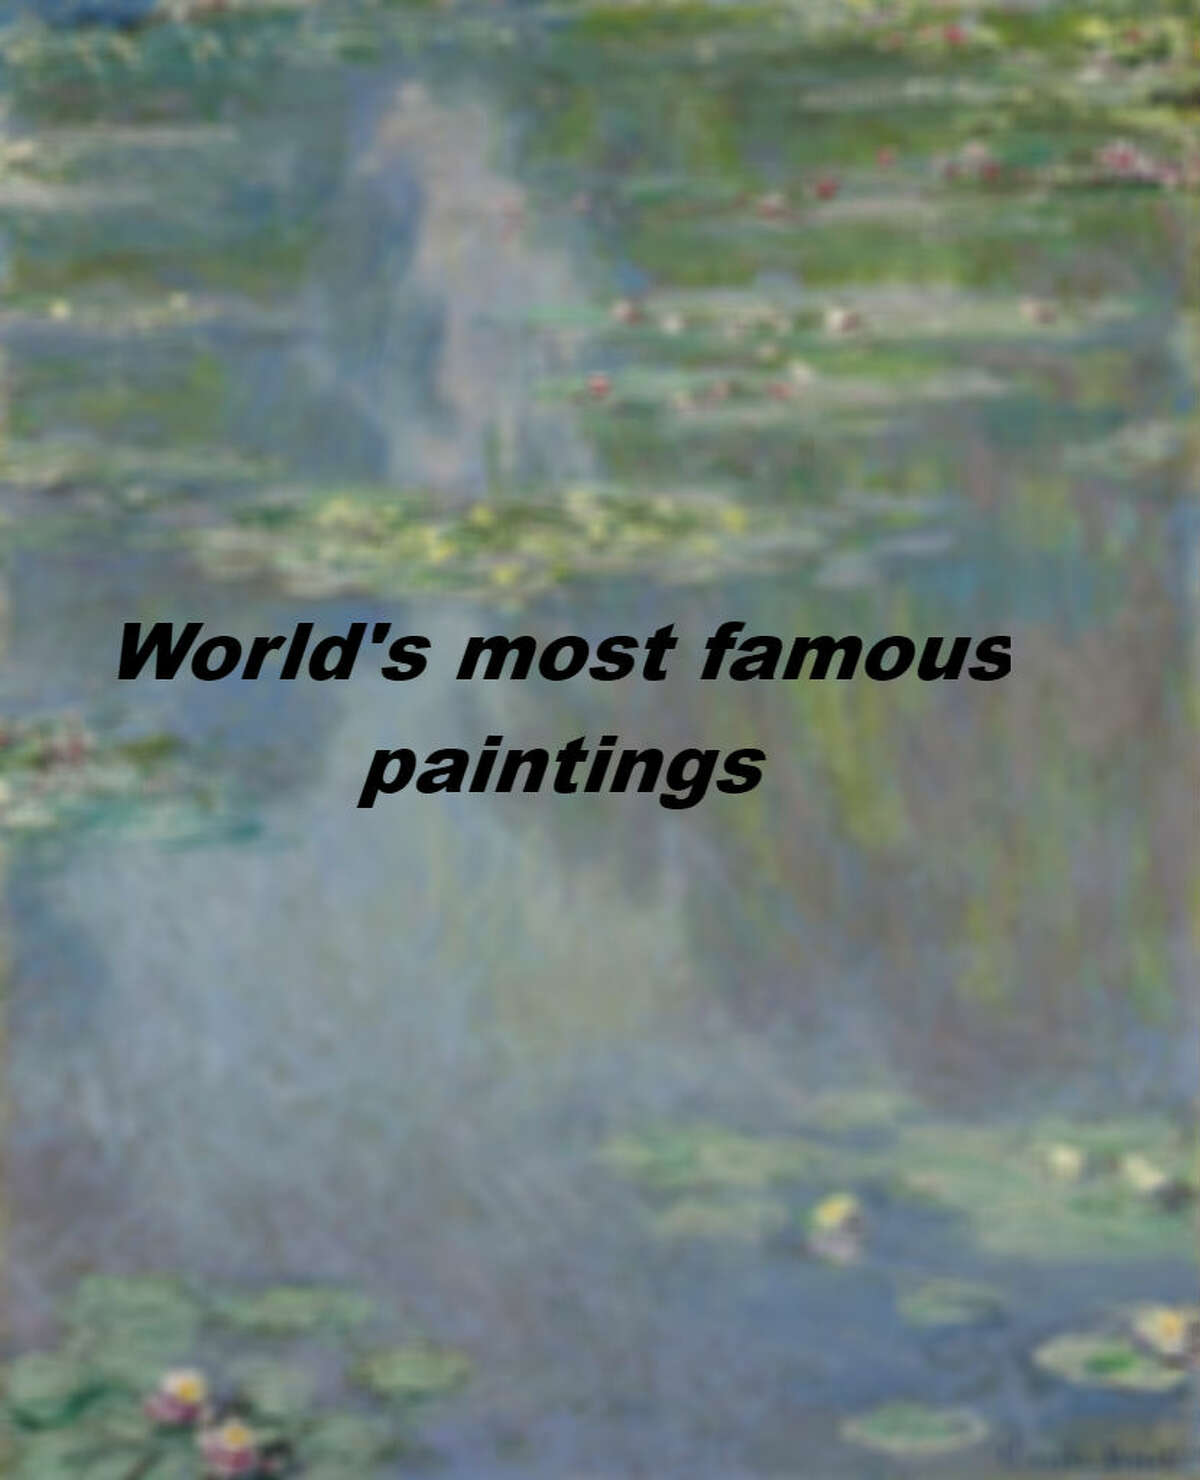 World's most famous paintings